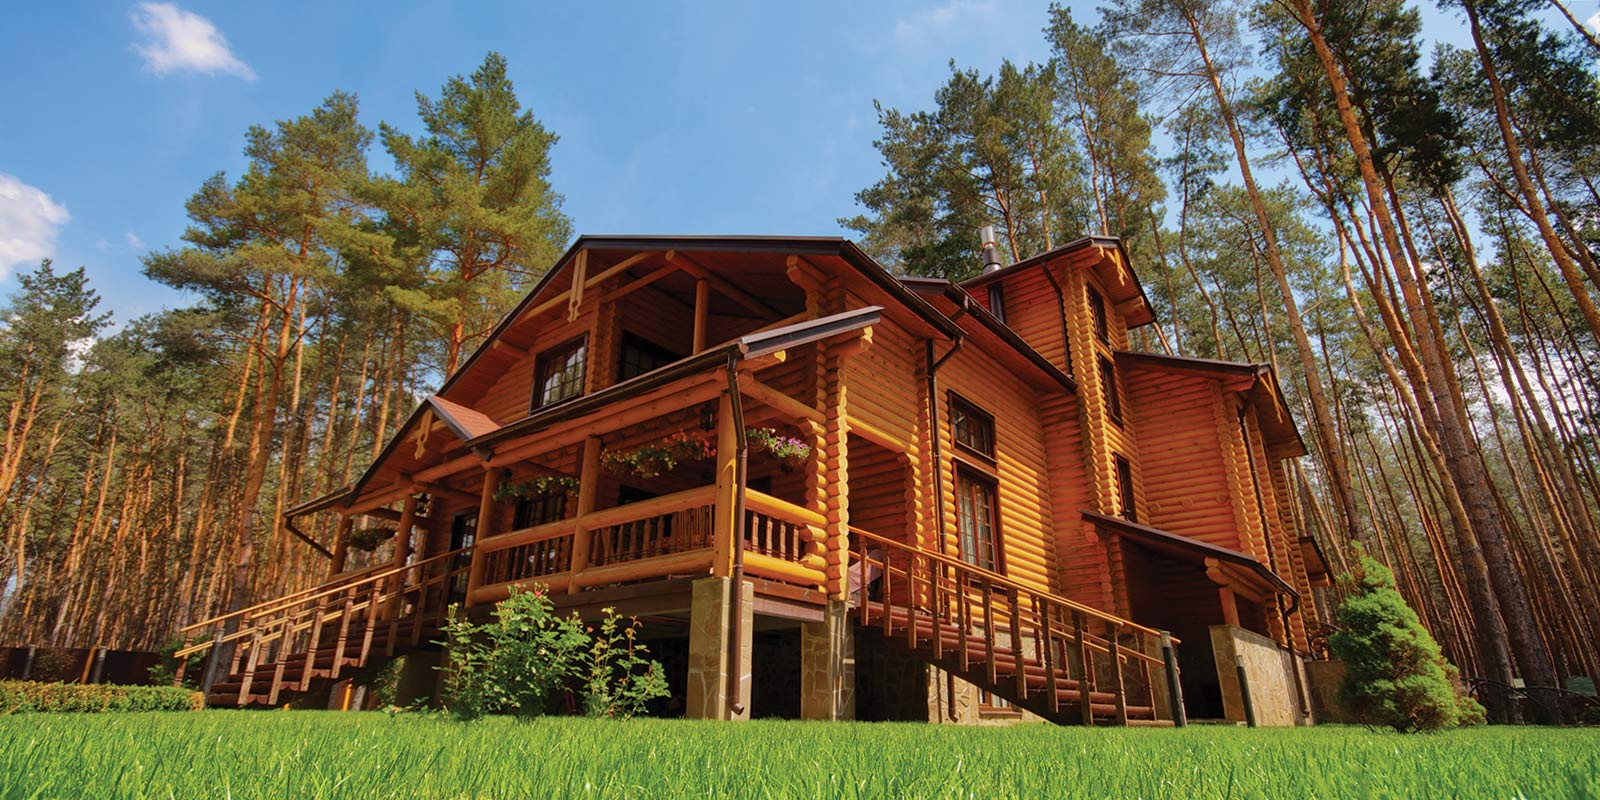 Log Homes & Log Cabins For Sale Nationwide - United Country